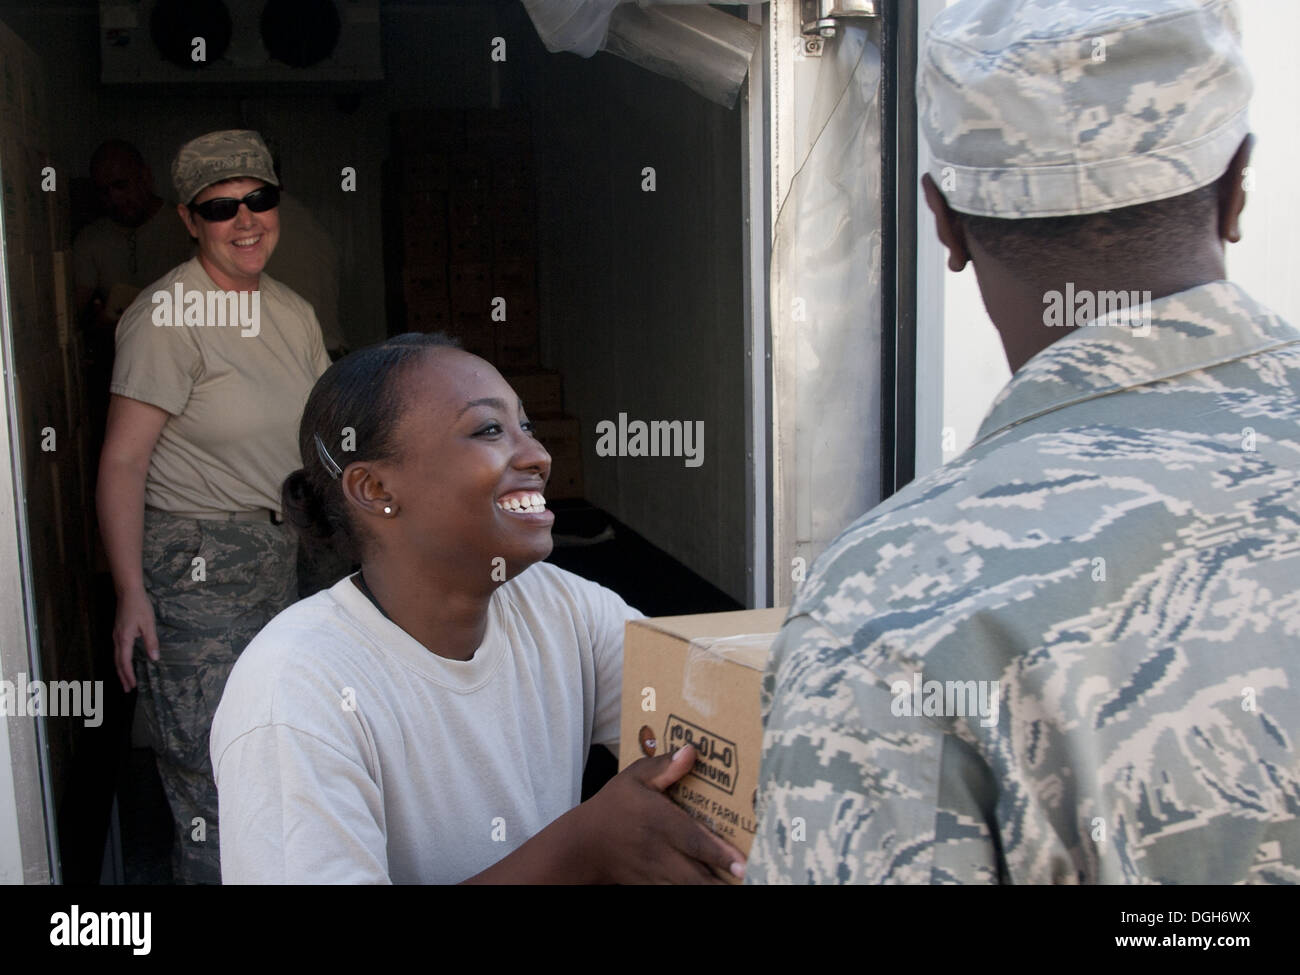 U.S. Air Force Staff Sgt. Padonda Ali, 380th Expeditionary Force Support Squadron food service specialist, takes a box of food to place into storage at an undisclosed location in Southwest Asia, Oct. 8, 2013. Ali was part of a large EFSS team, who all com - Stock Image